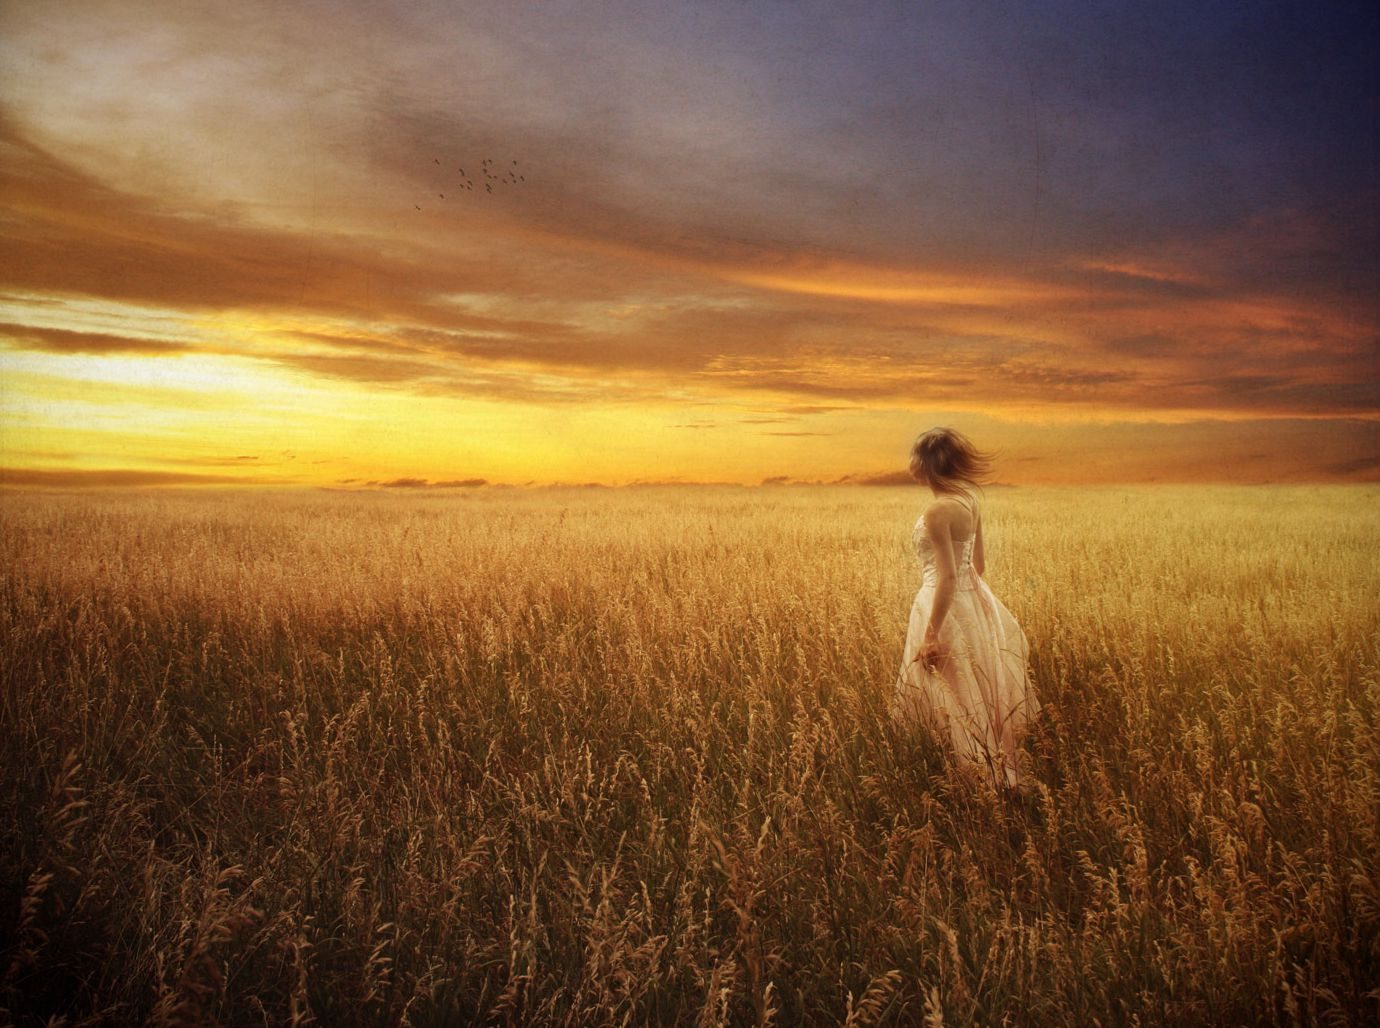 Why is the idea of standing in the middle of a huge wheat field so awe inspiring?